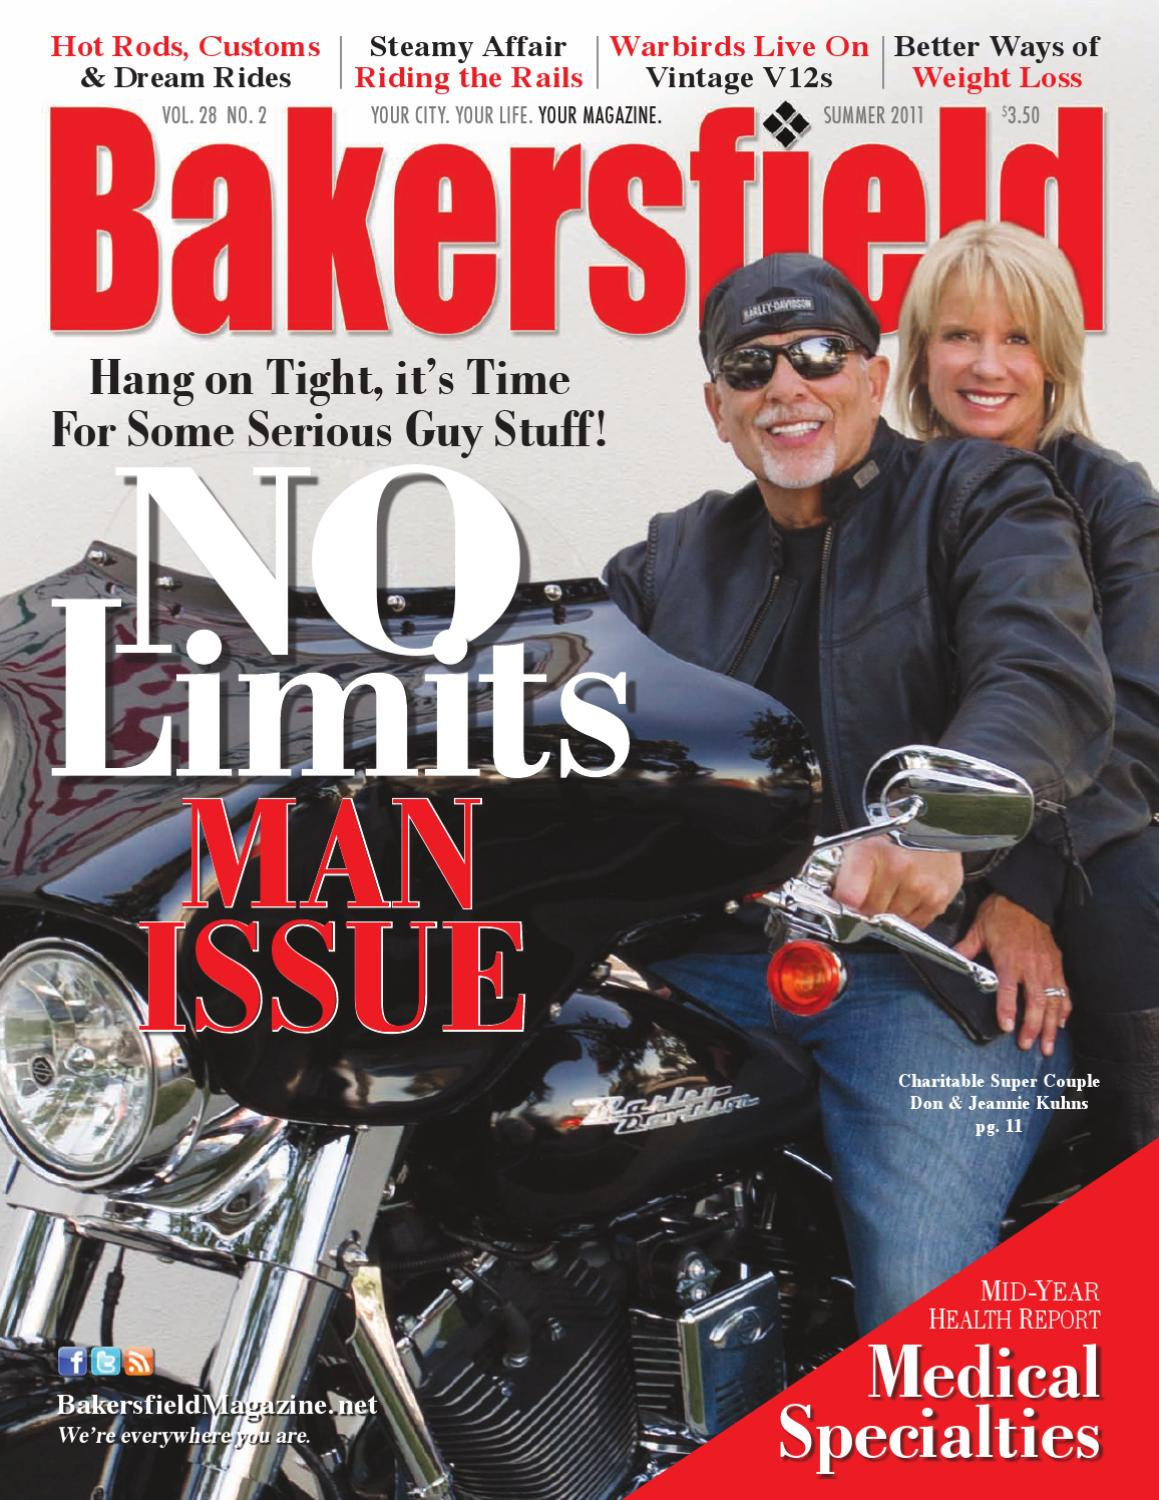 Bakersfield magazine 28 2 the man issue by bakersfield for Bakersfield home magazine